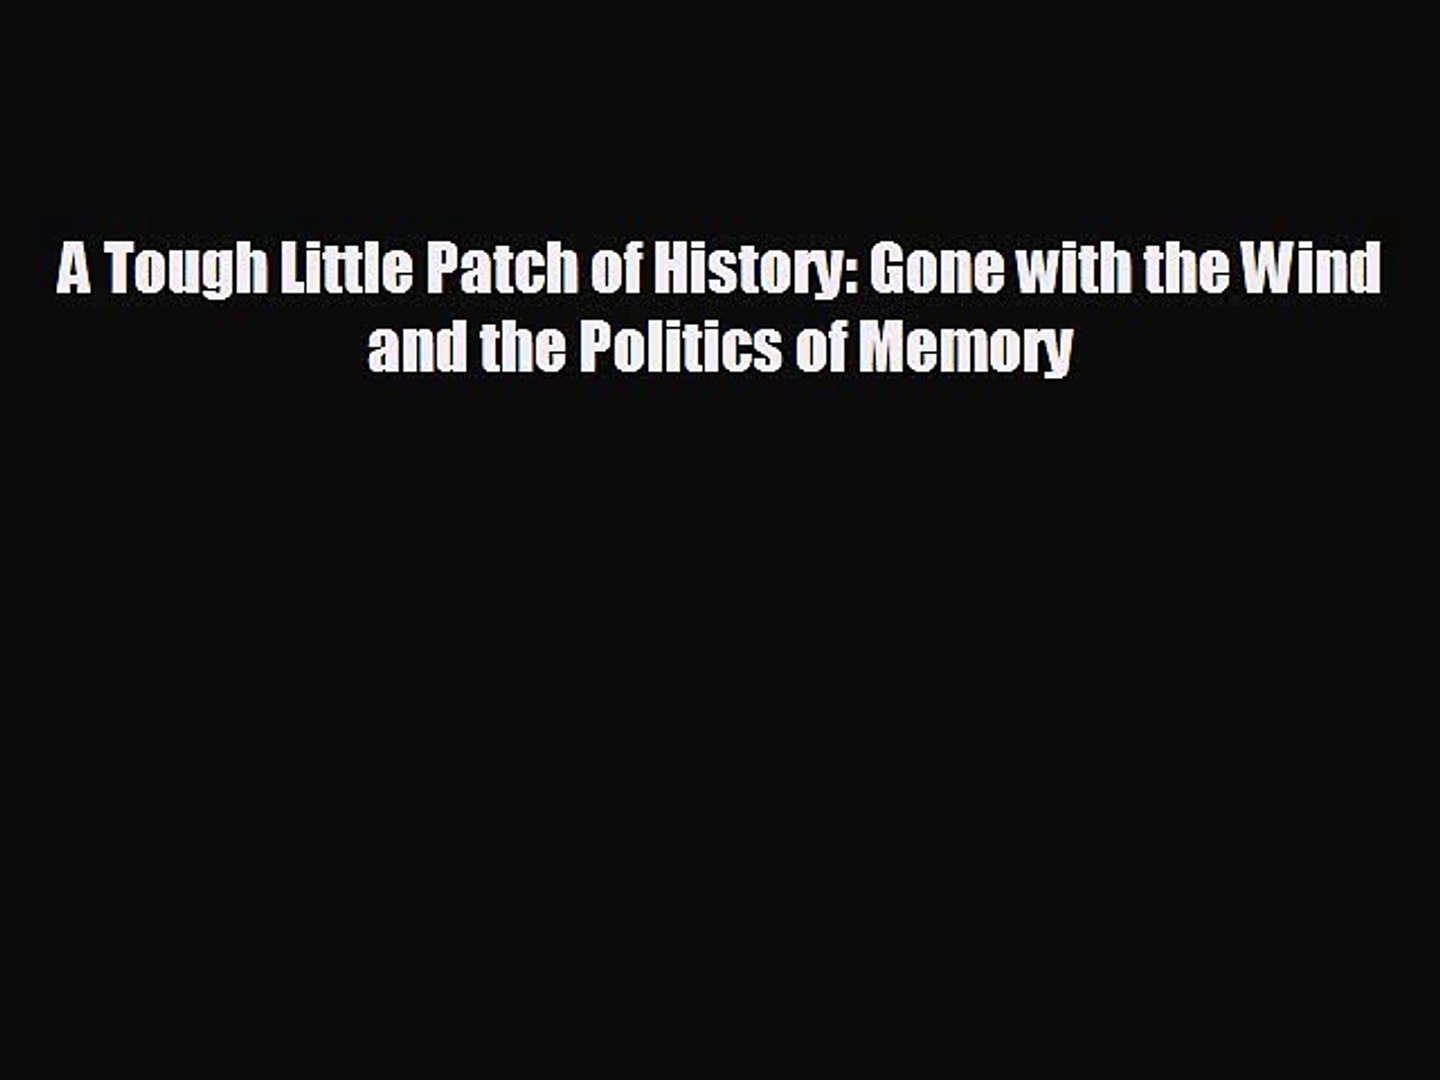 behold A Tough Little Patch of History: Gone with the Wind and the Politics of Memory